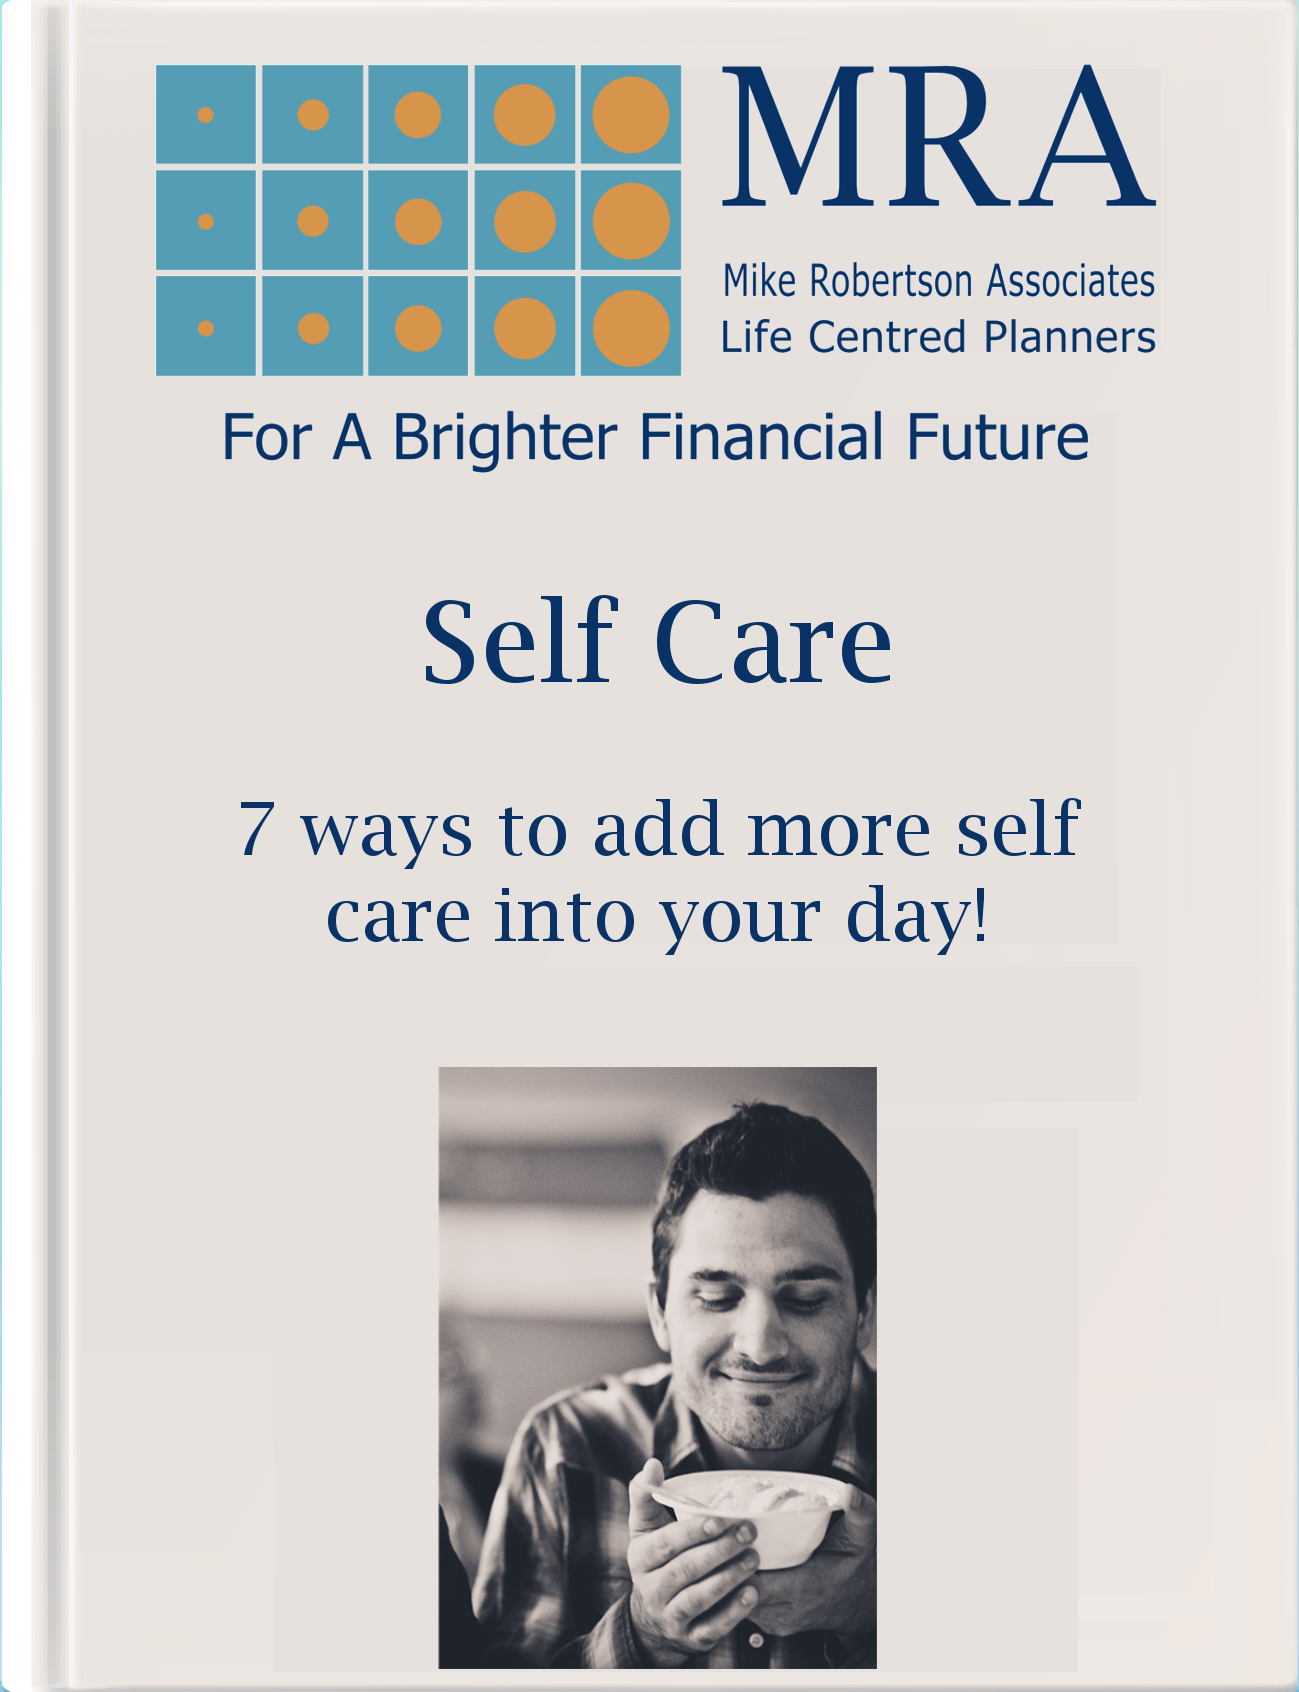 Download our Ebook to find out how to add more Self Care into your day